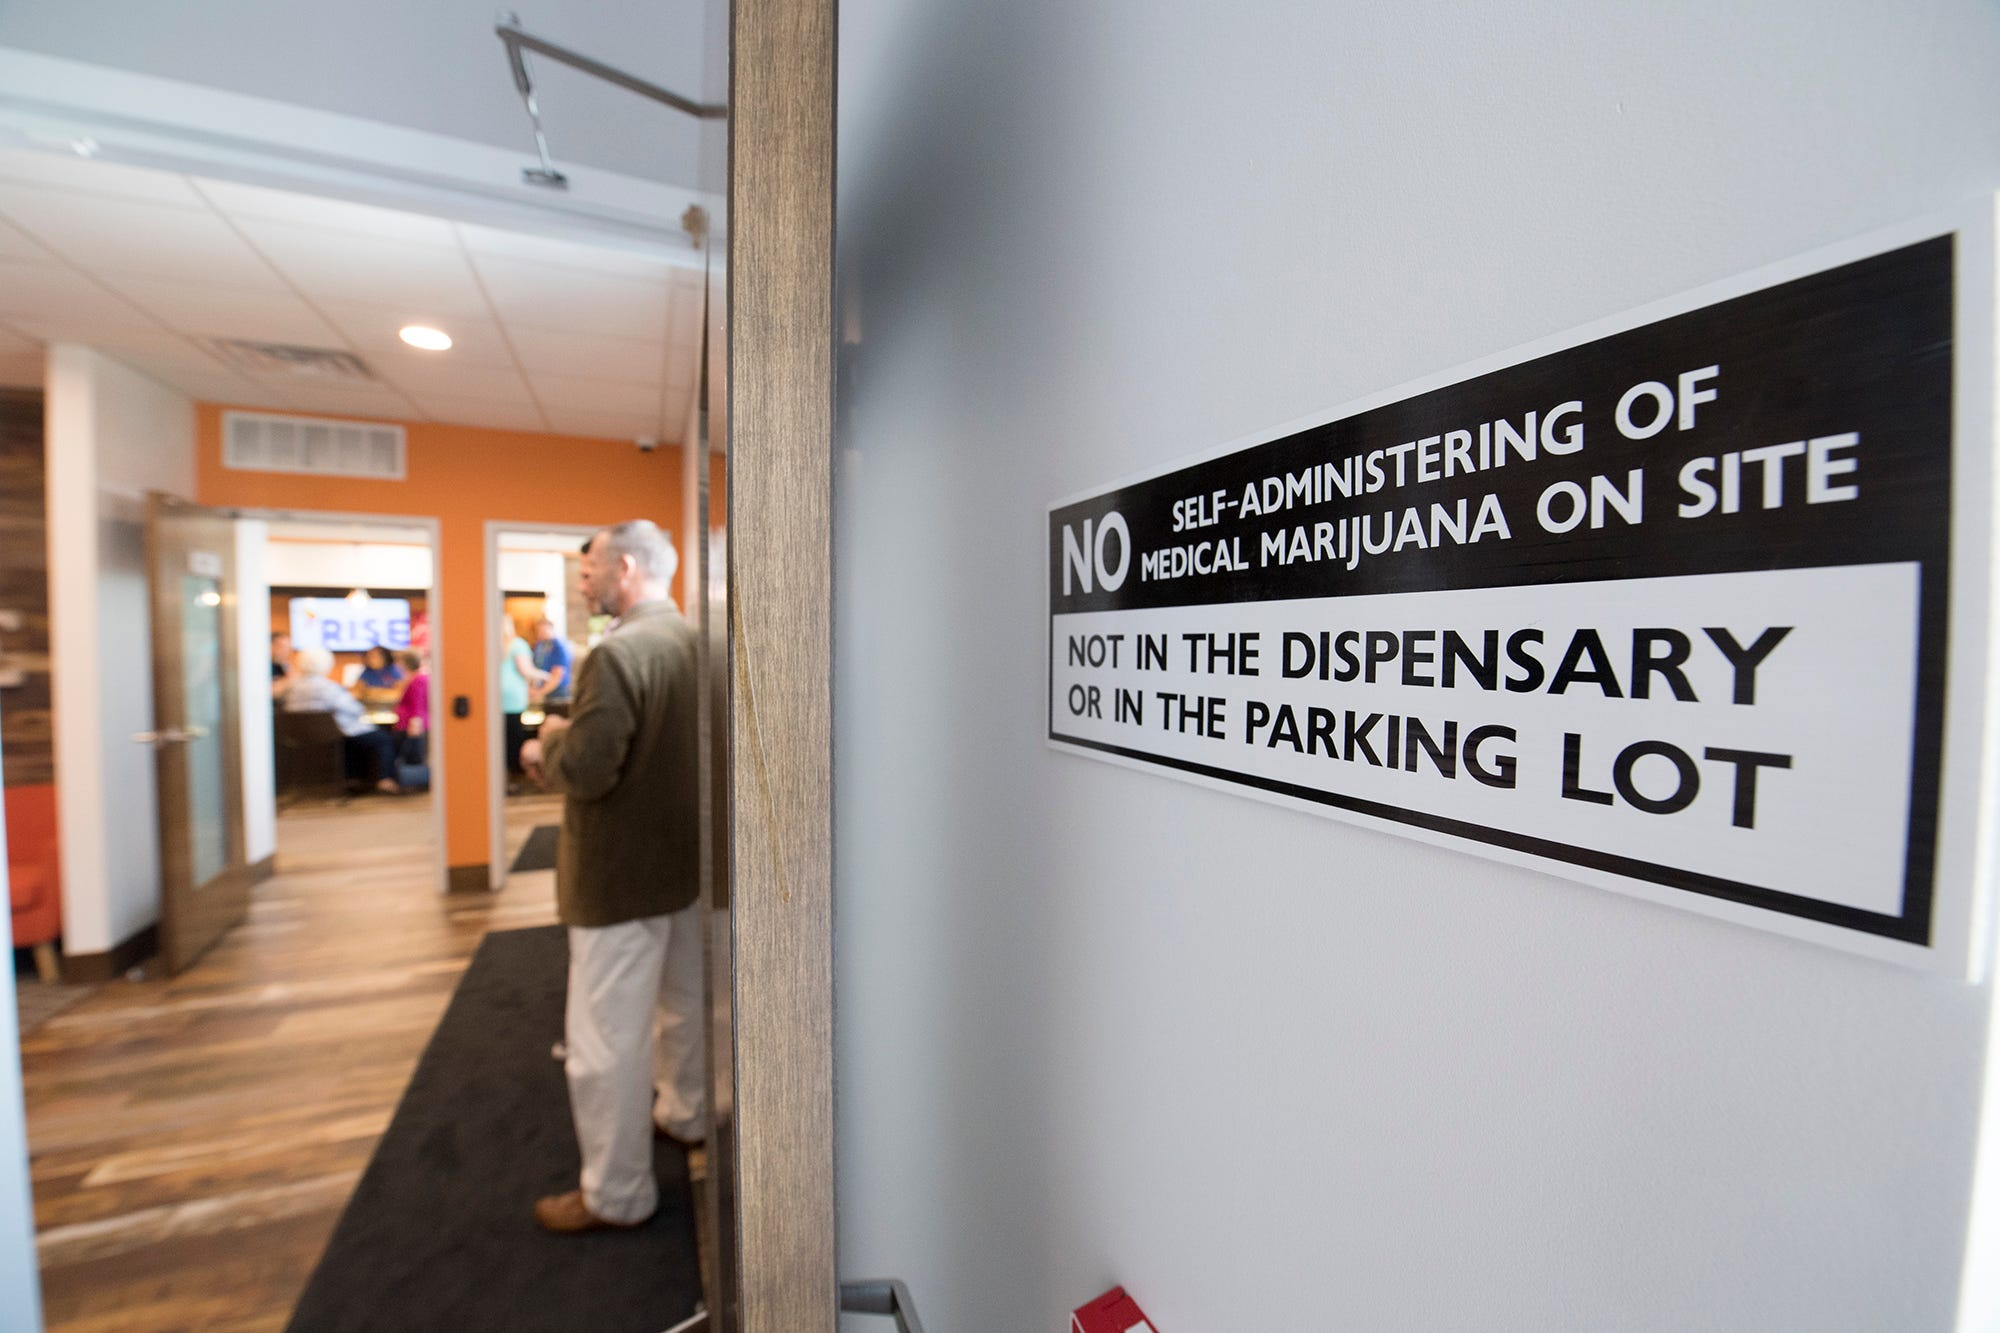 Take a tour of new medical marijuana dispensary in West Manchester  Township, open house